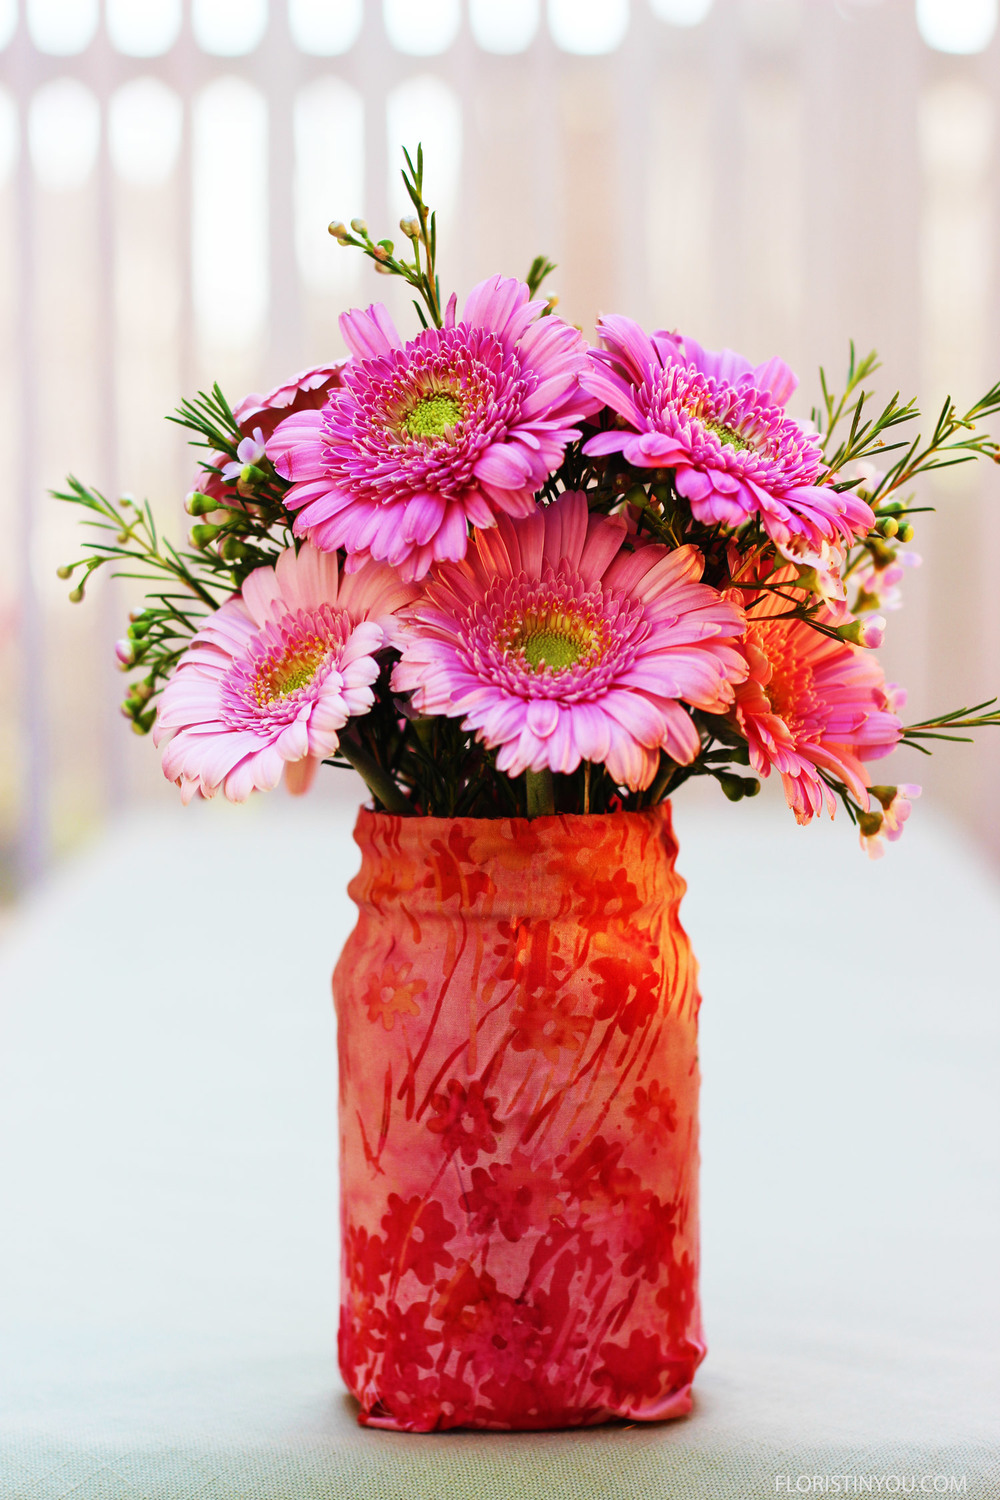 Gerber Daisies and Wax Flowers